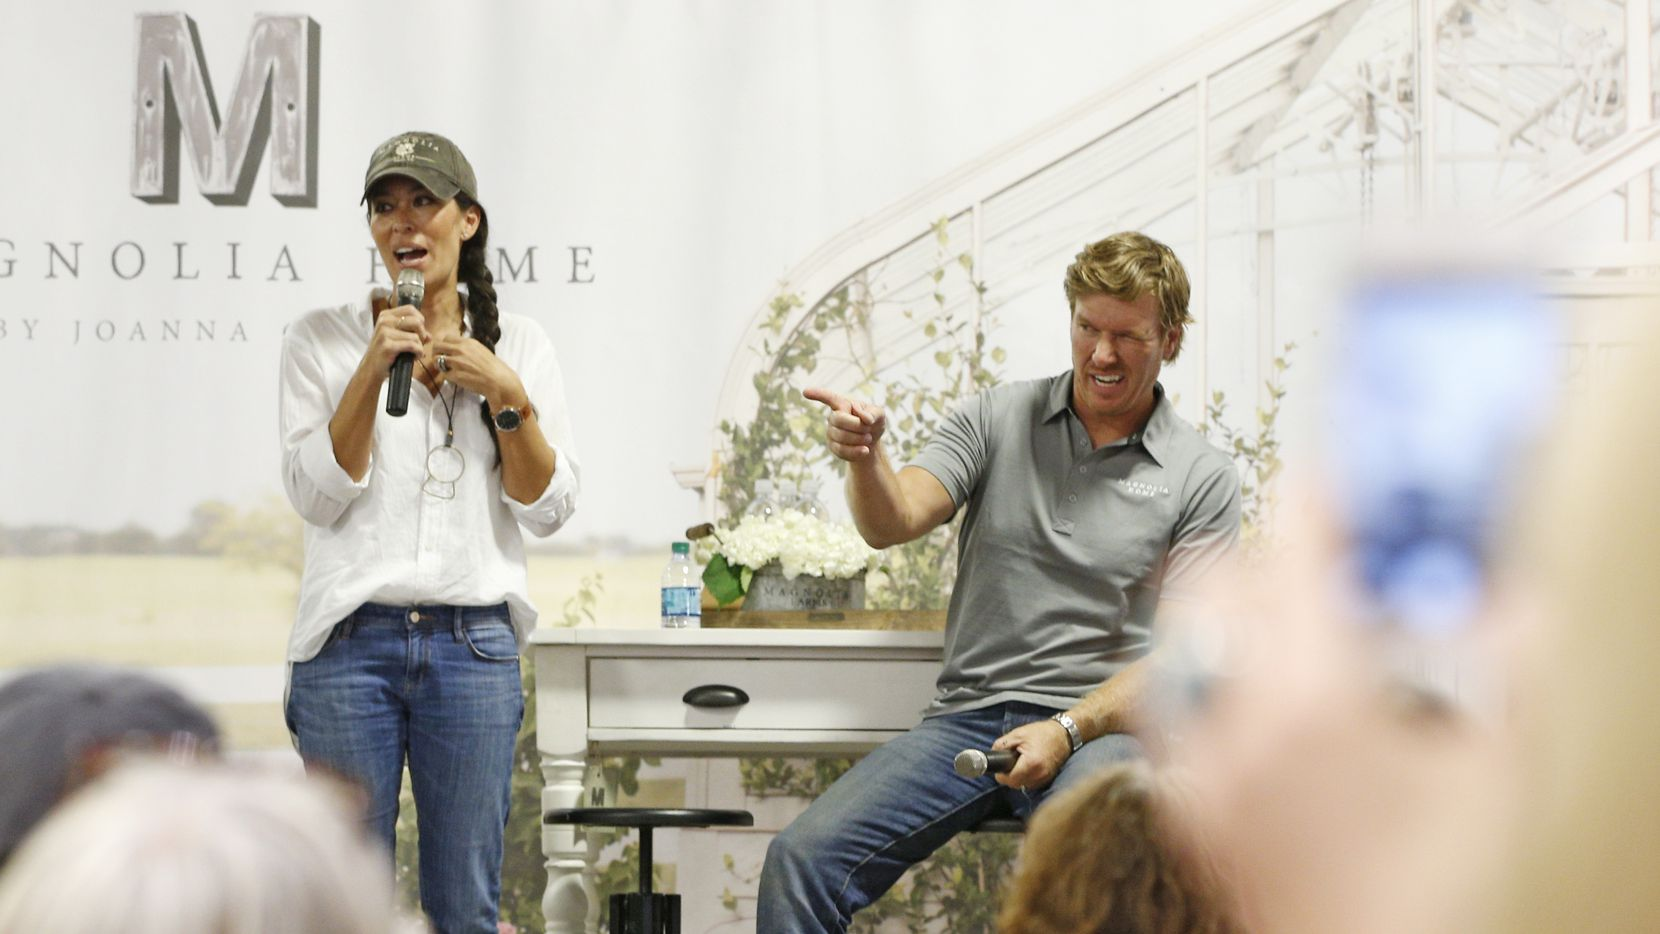 HGTV stars from Waco, Texas, Chip and Joanna Gaines talk to the audience during an appearance at  Nebraska Furniture Mart Texas in The Colony, Texas Aug. 30, 2016.  (Nathan Hunsinger/The Dallas Morning News)